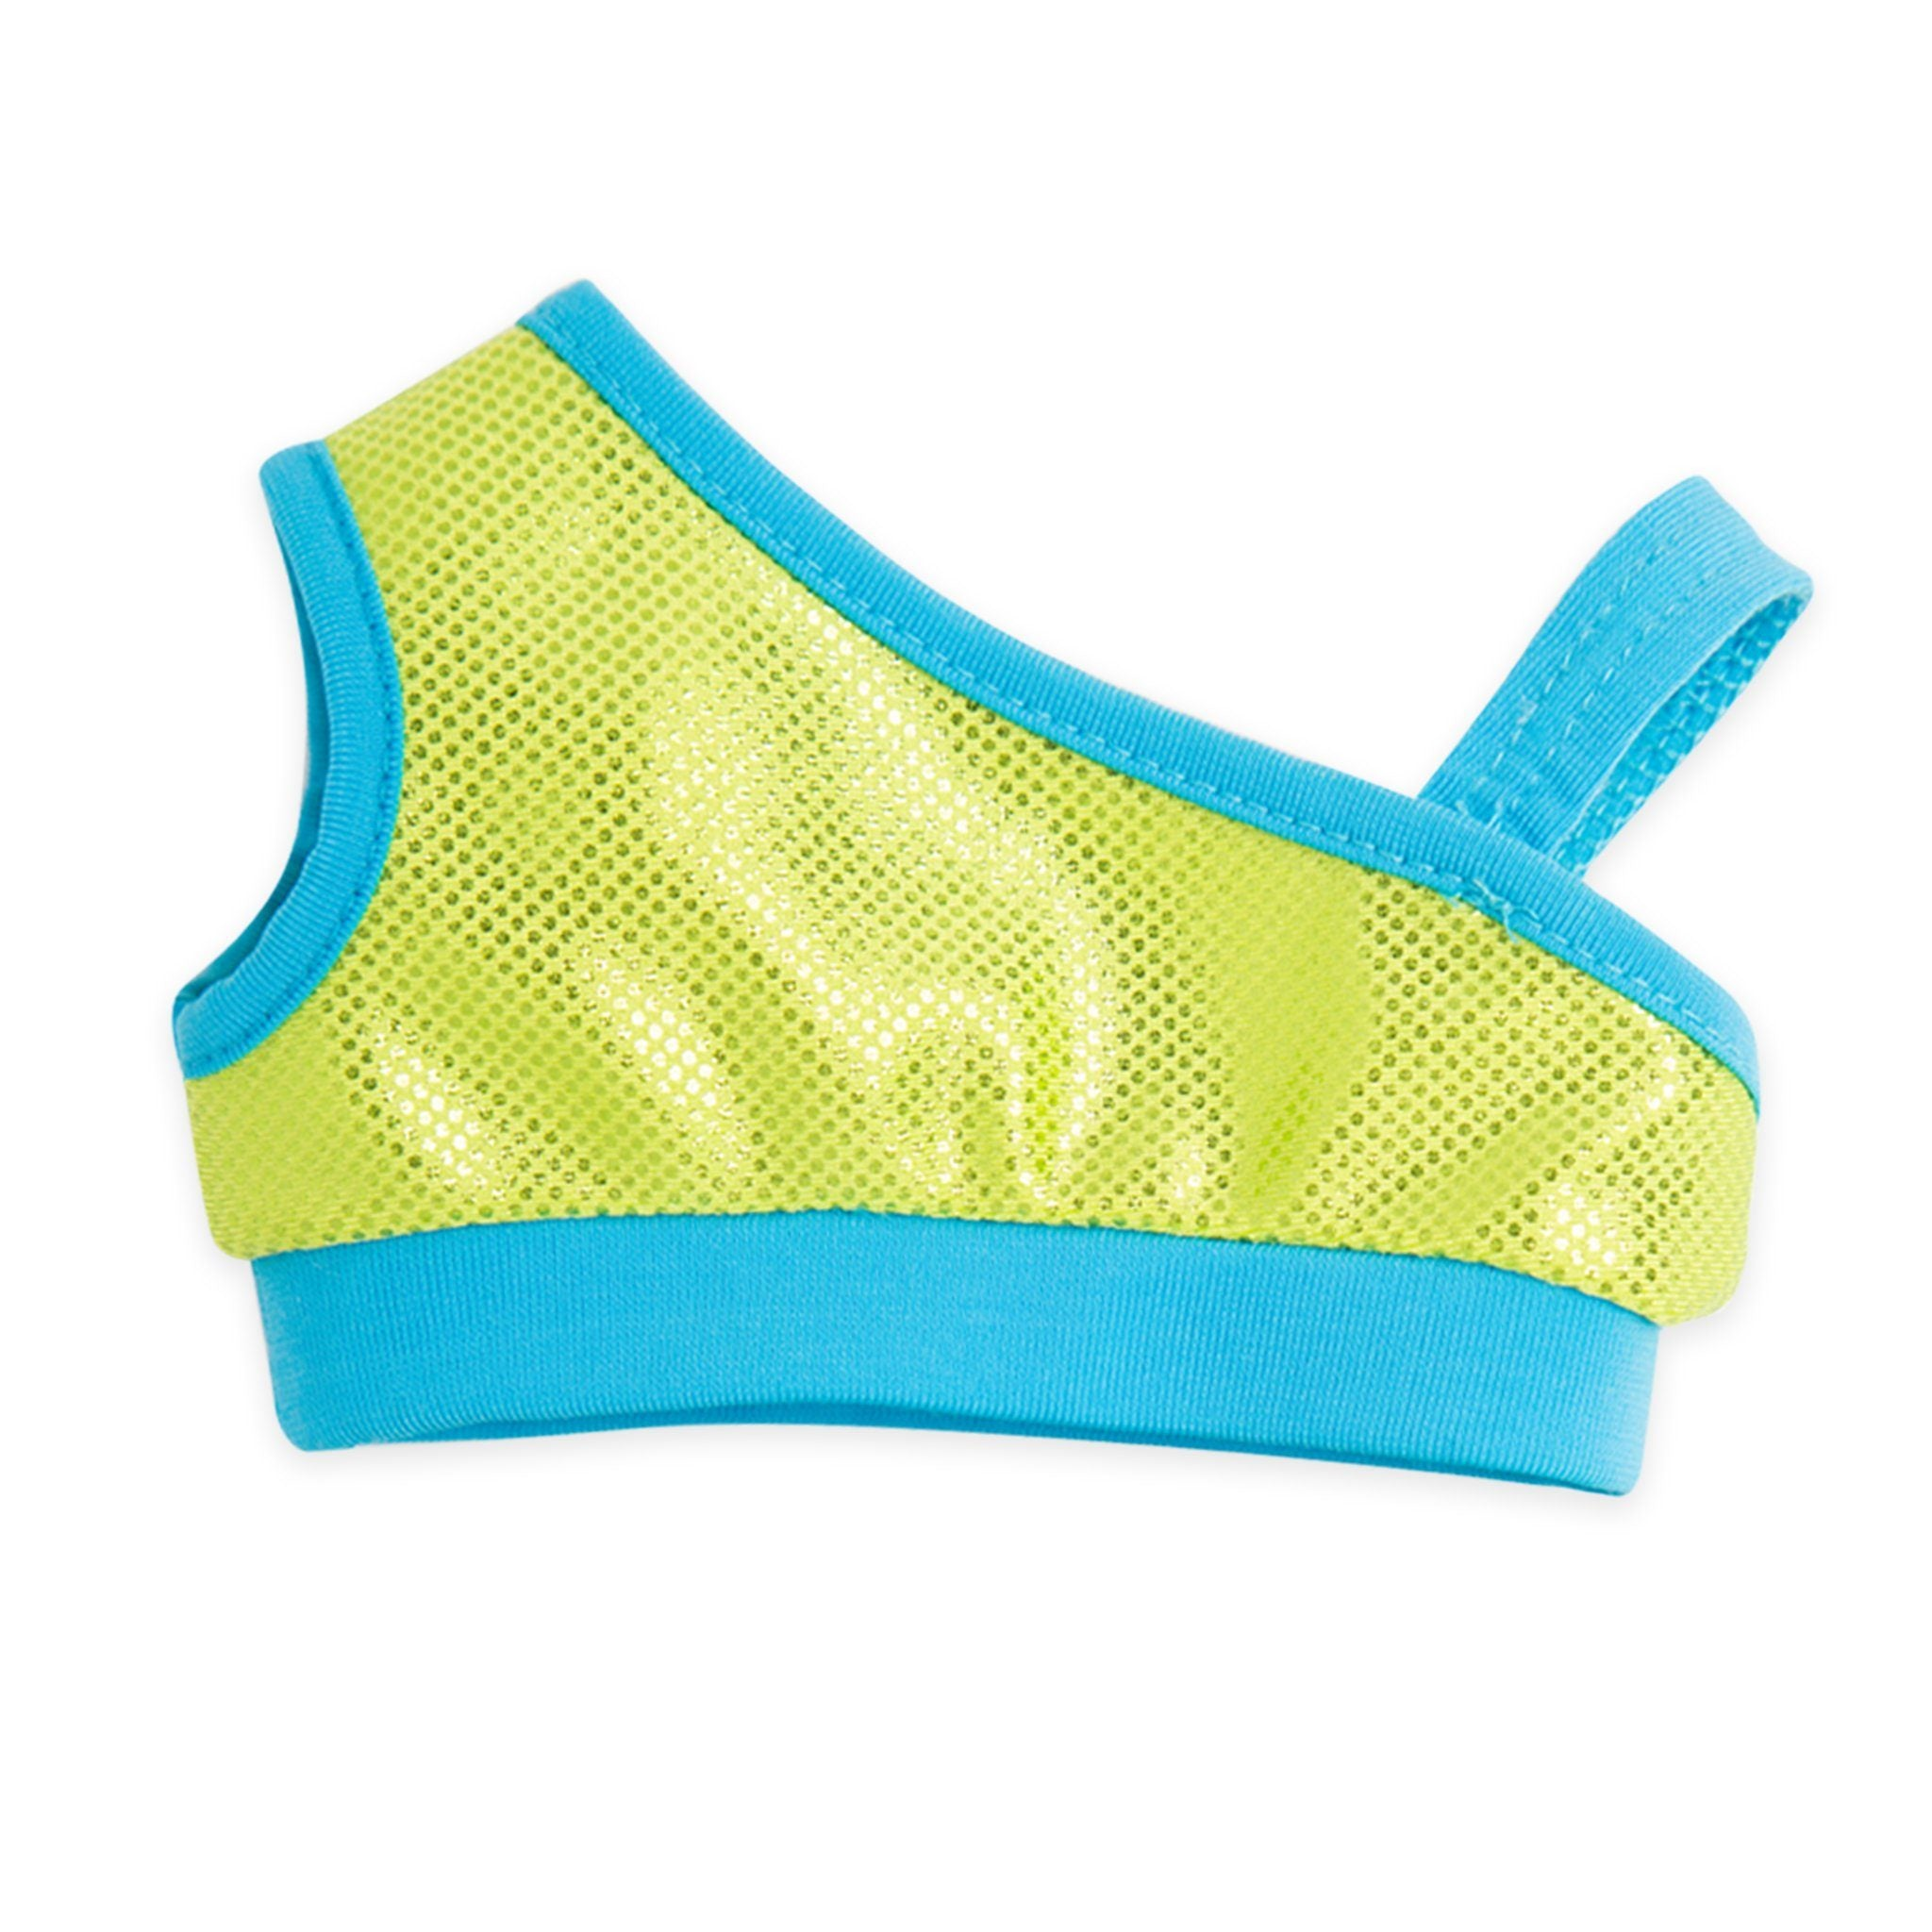 West Coast Waterwear asymmetric sparkly green bathing suit top with blue trim fits all 18 inch dolls.